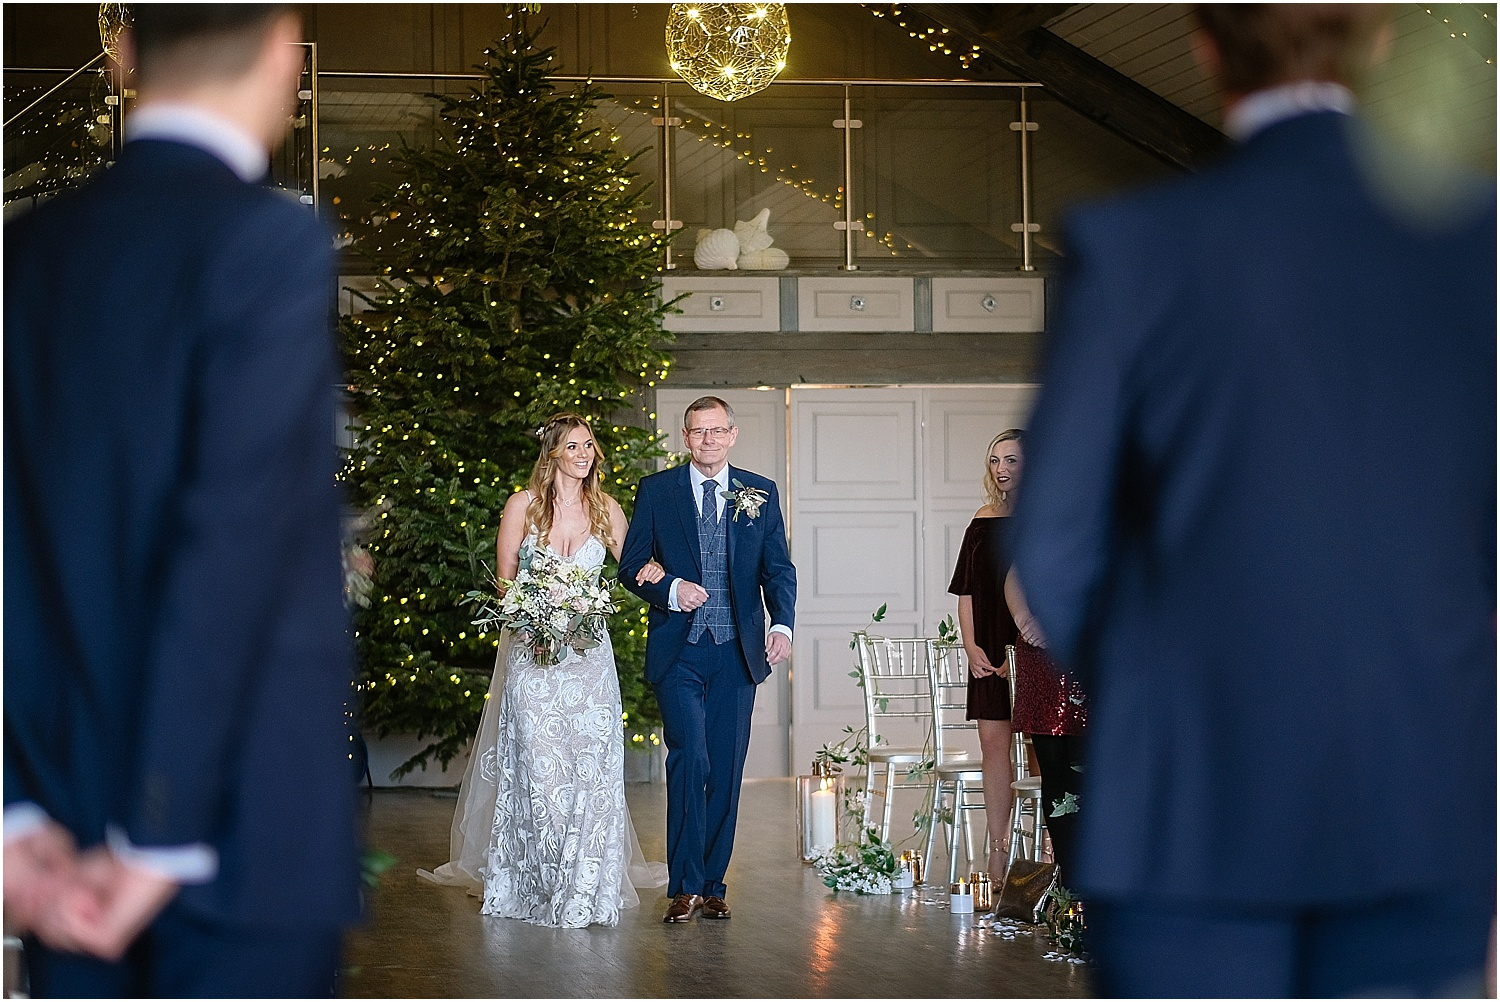 The Yorkshire Wedding barn photography by 2tone Photography 030.jpg